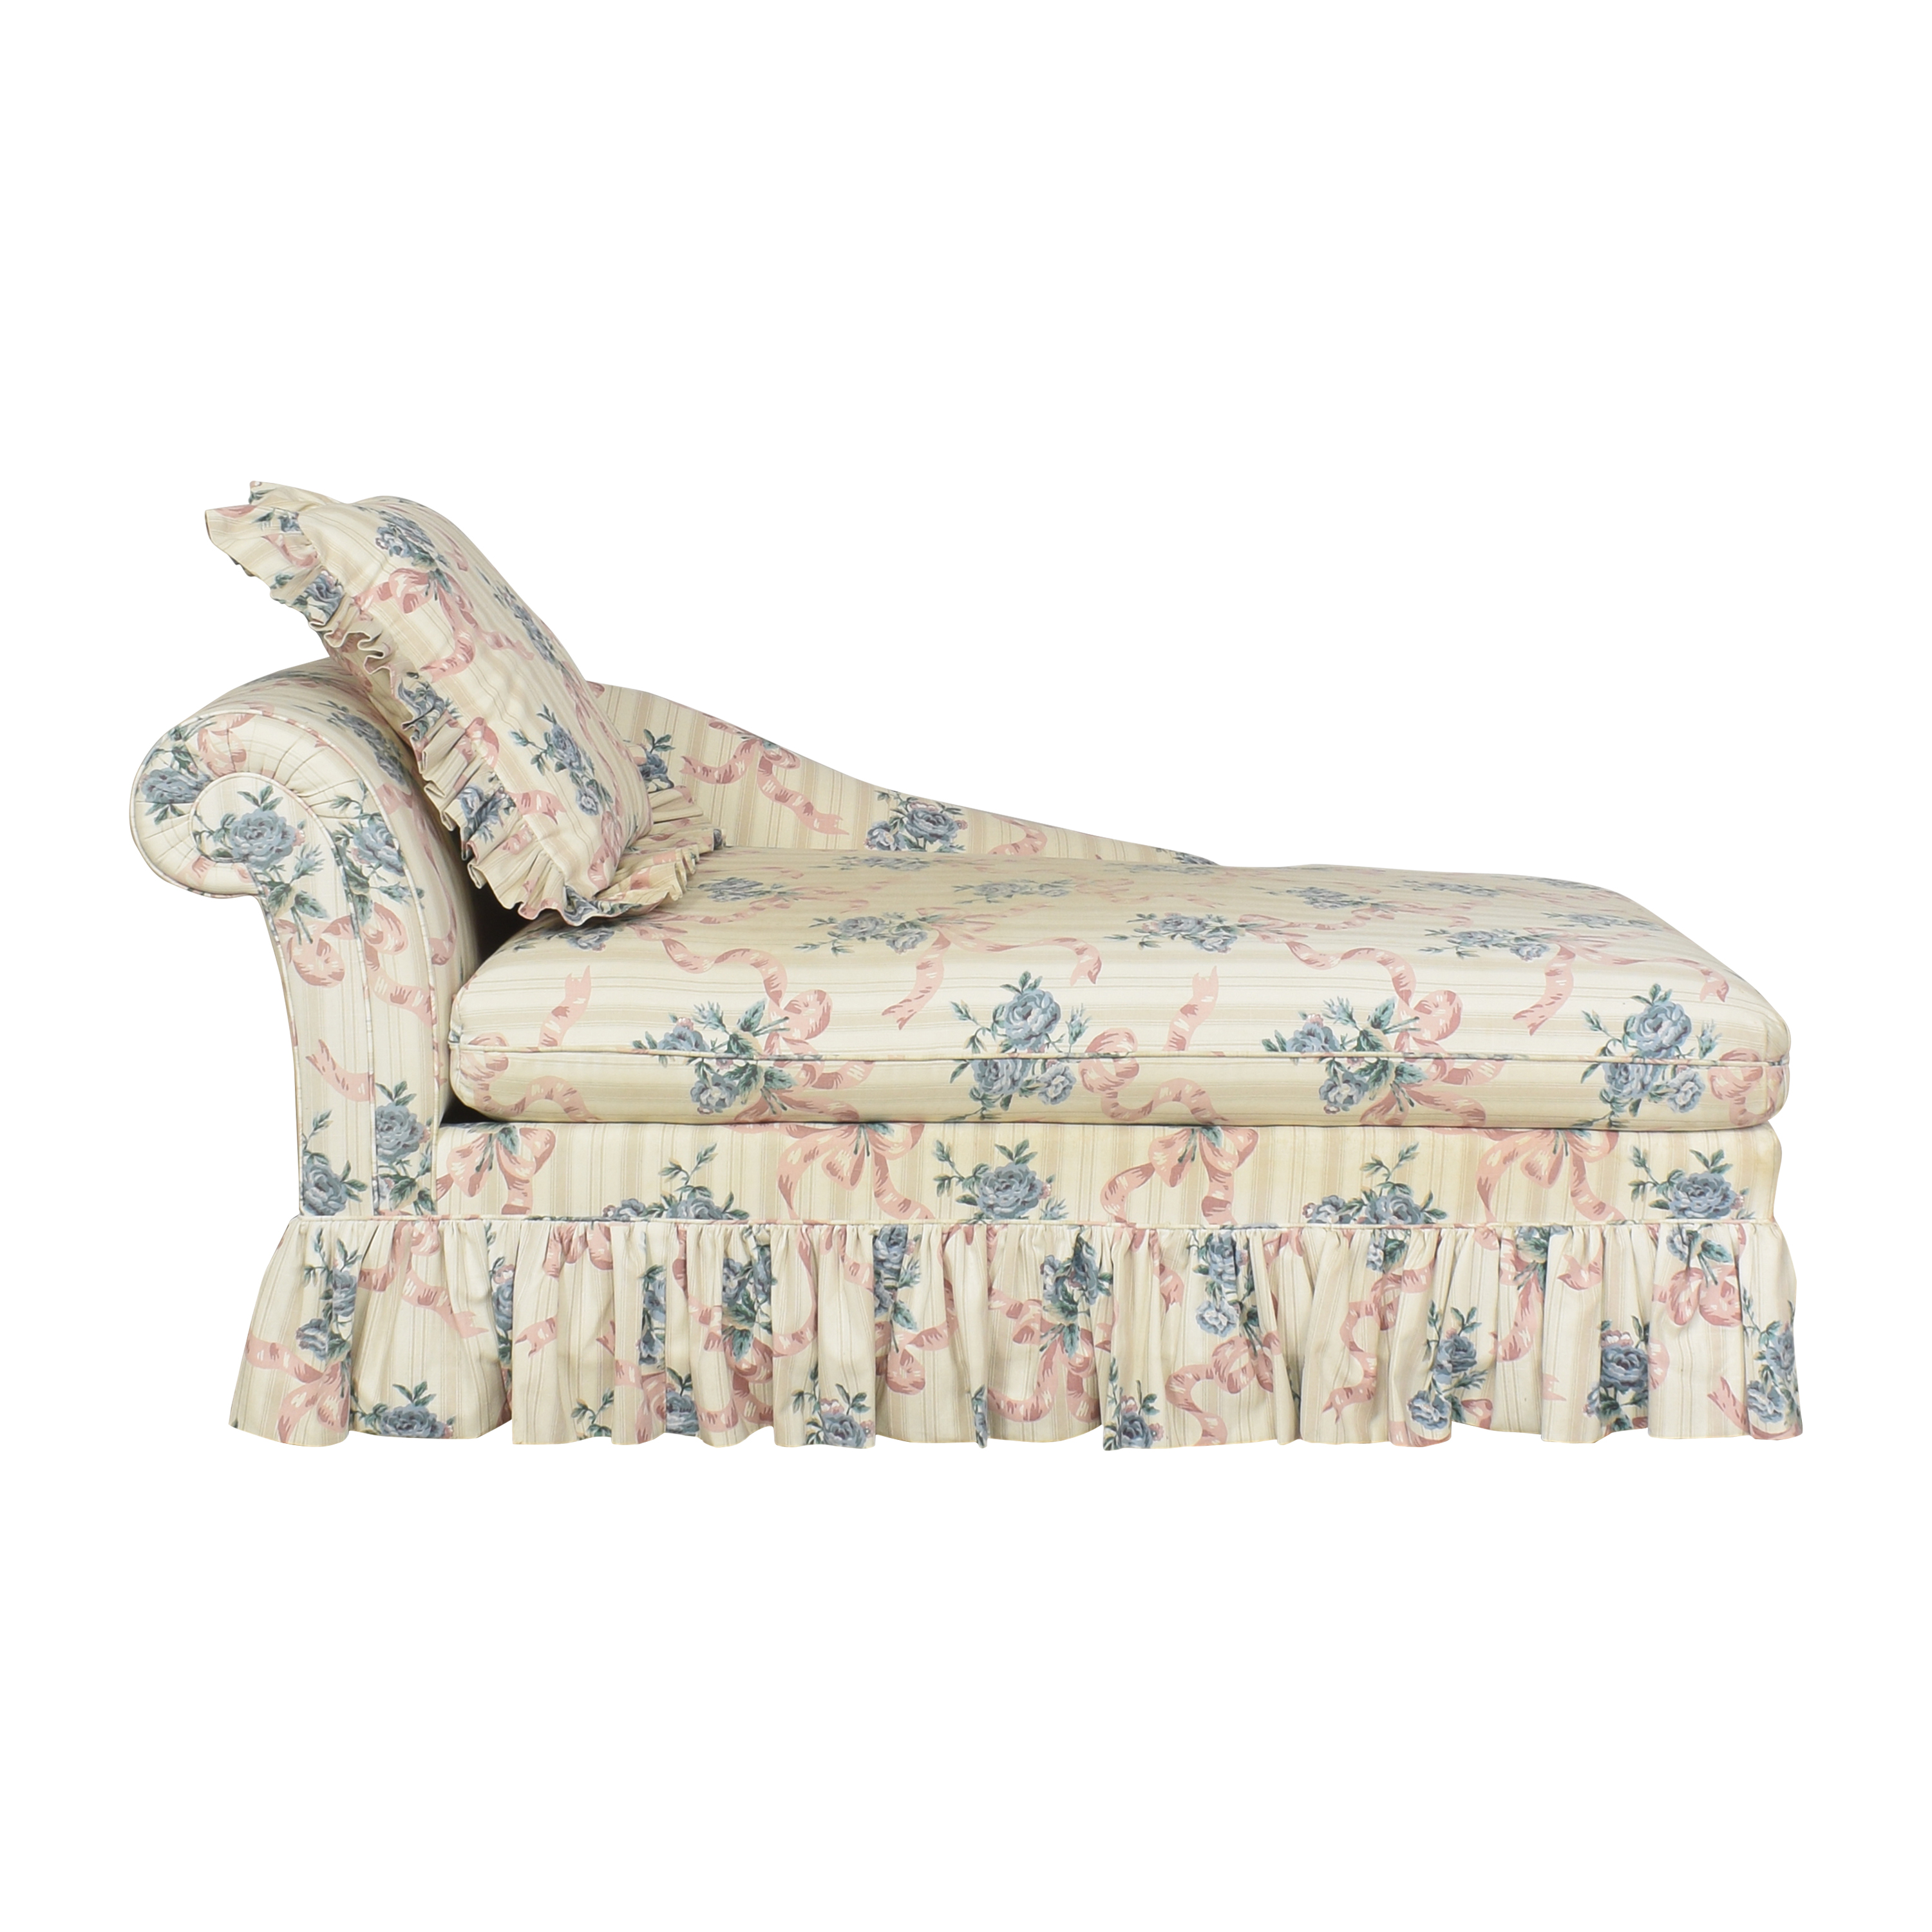 Ethan Allen Ethan Allen Traditional Classics Chaise Lounge second hand